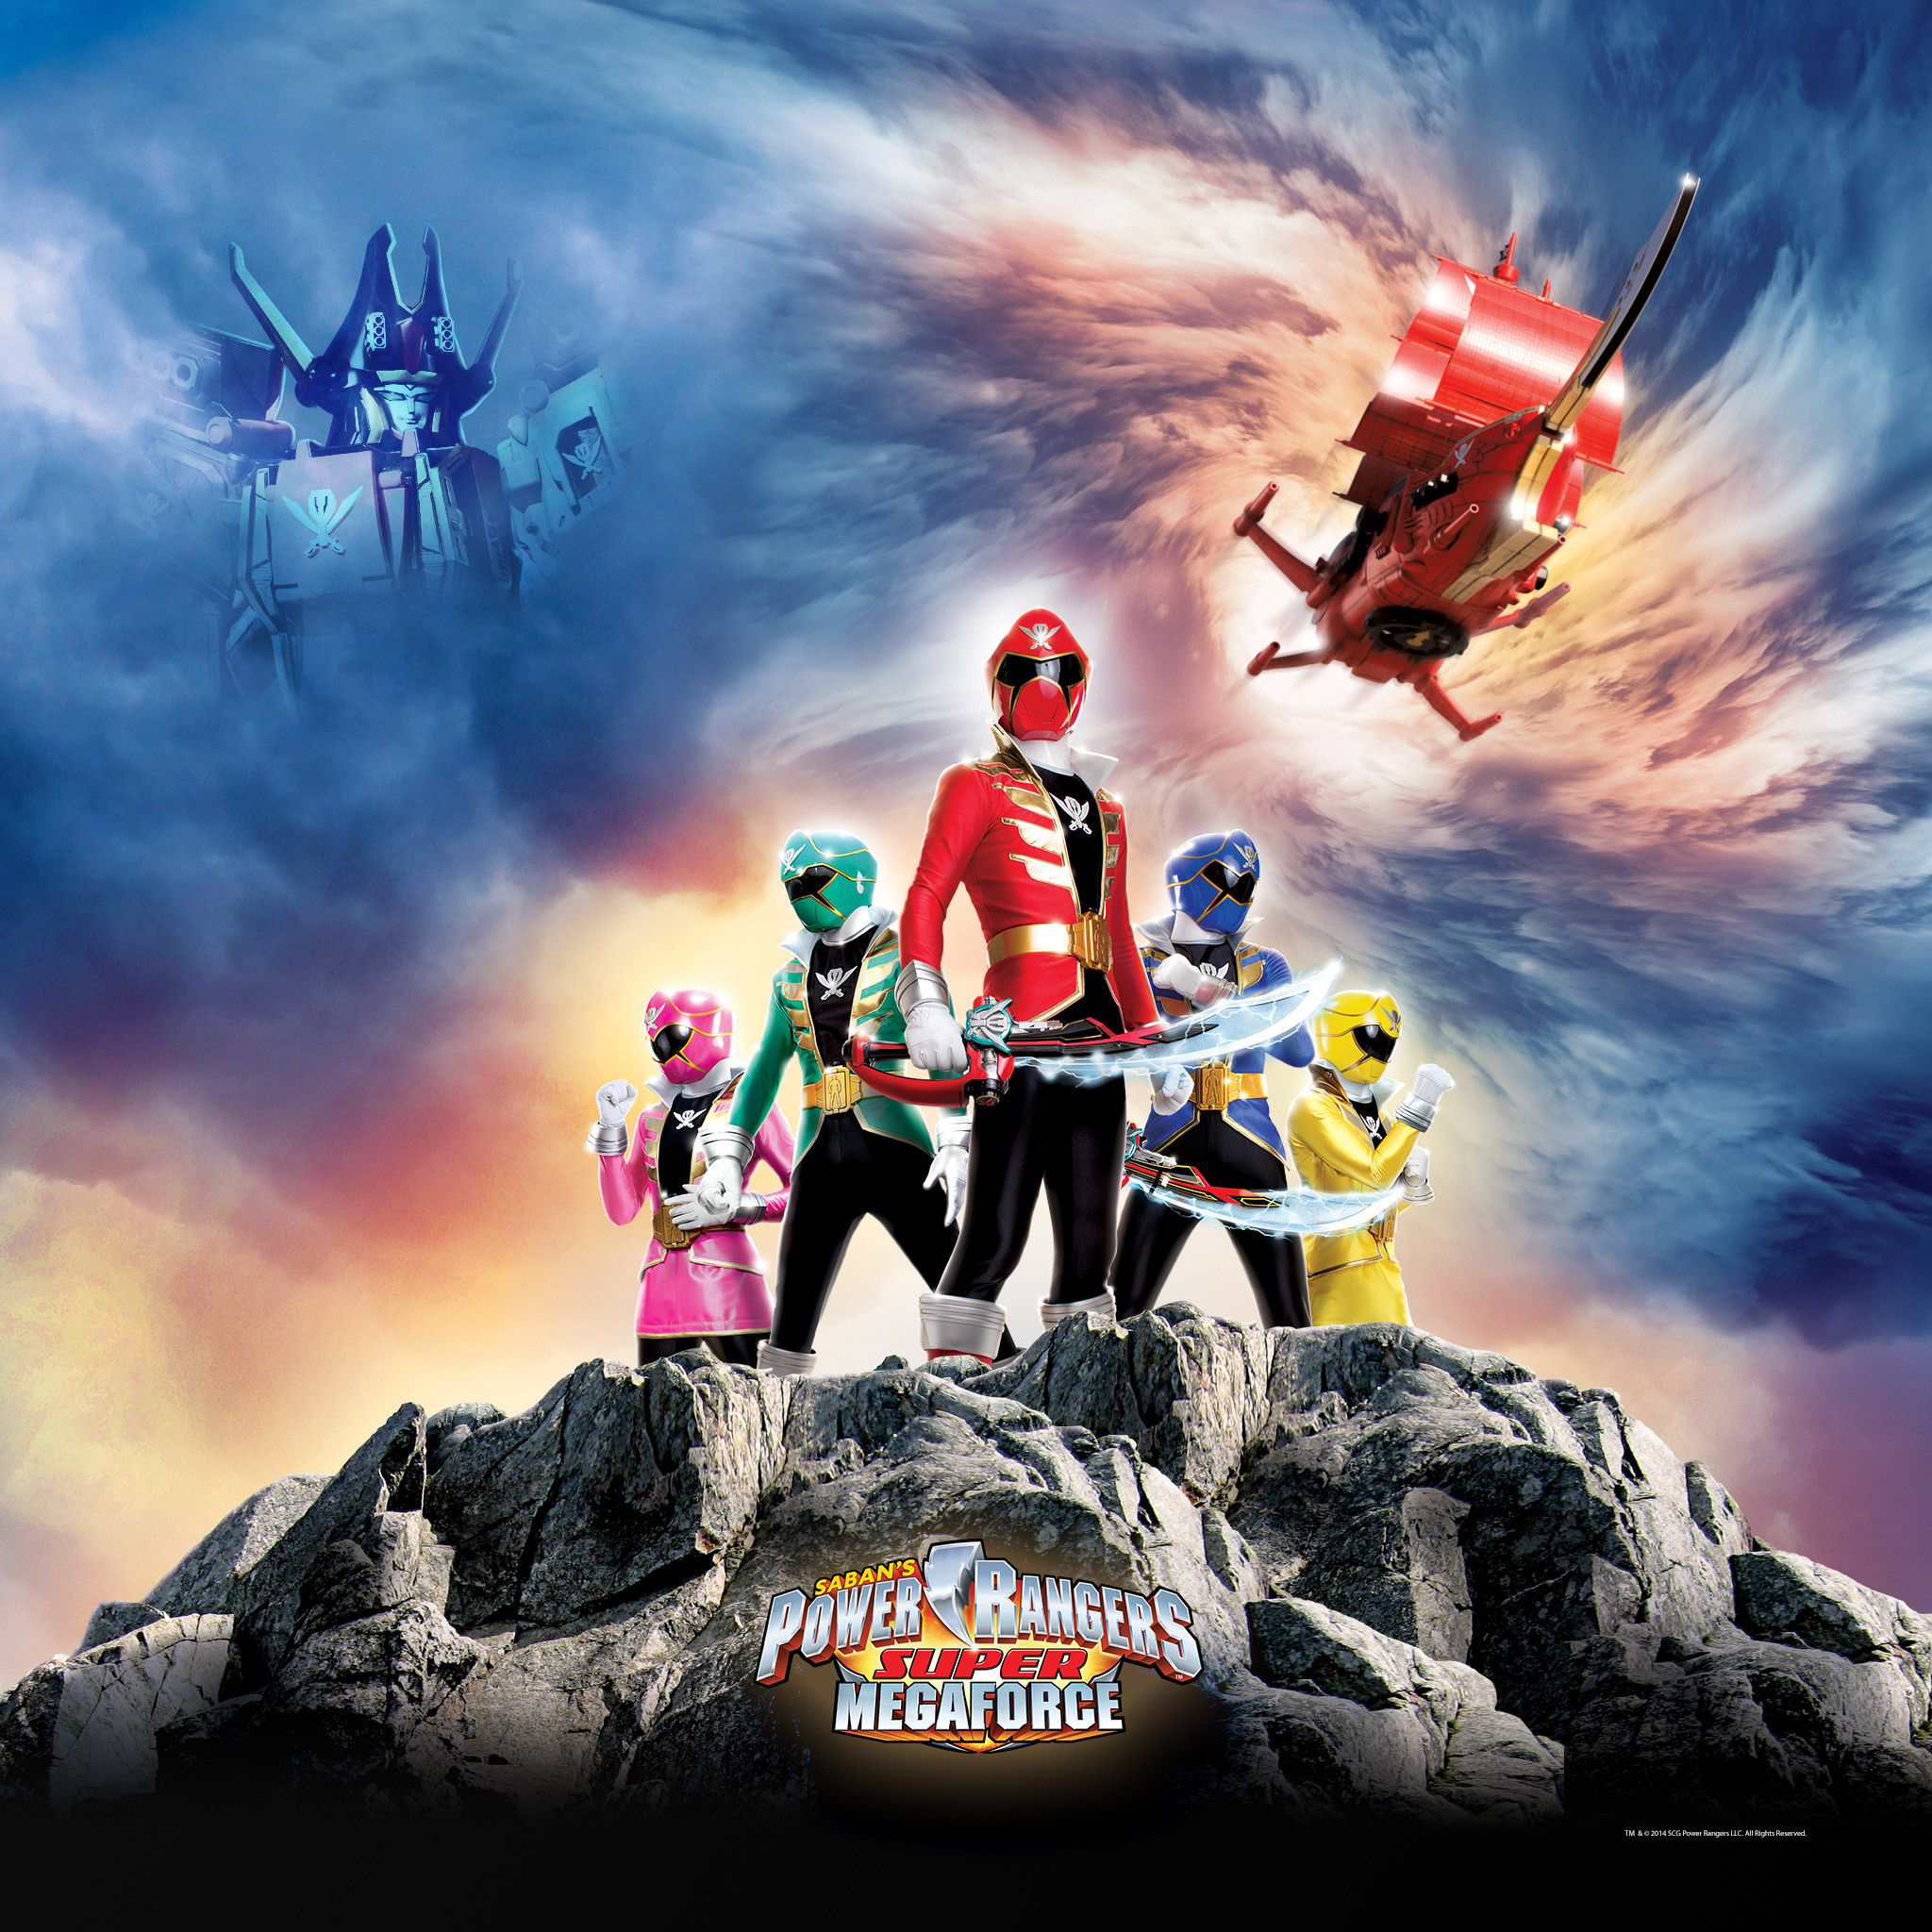 2048x2048 Wallpaper Super Megaforce Group 2 Fun iPad Wallpapers for Kids